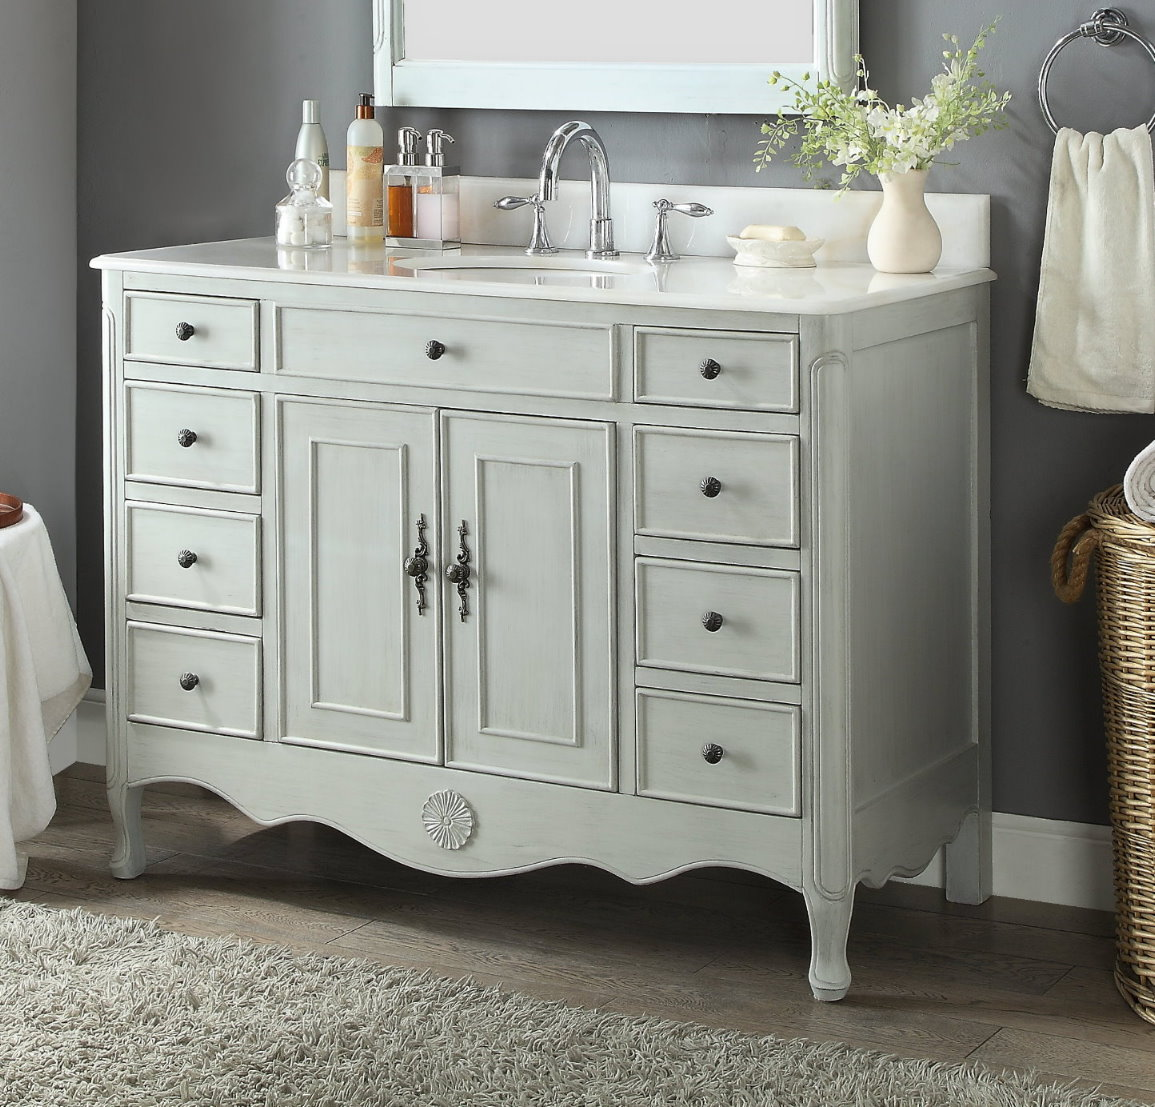 "46.5"" Distressed Grey Single Sink Bathroom Vanity with White Marble Countertop"